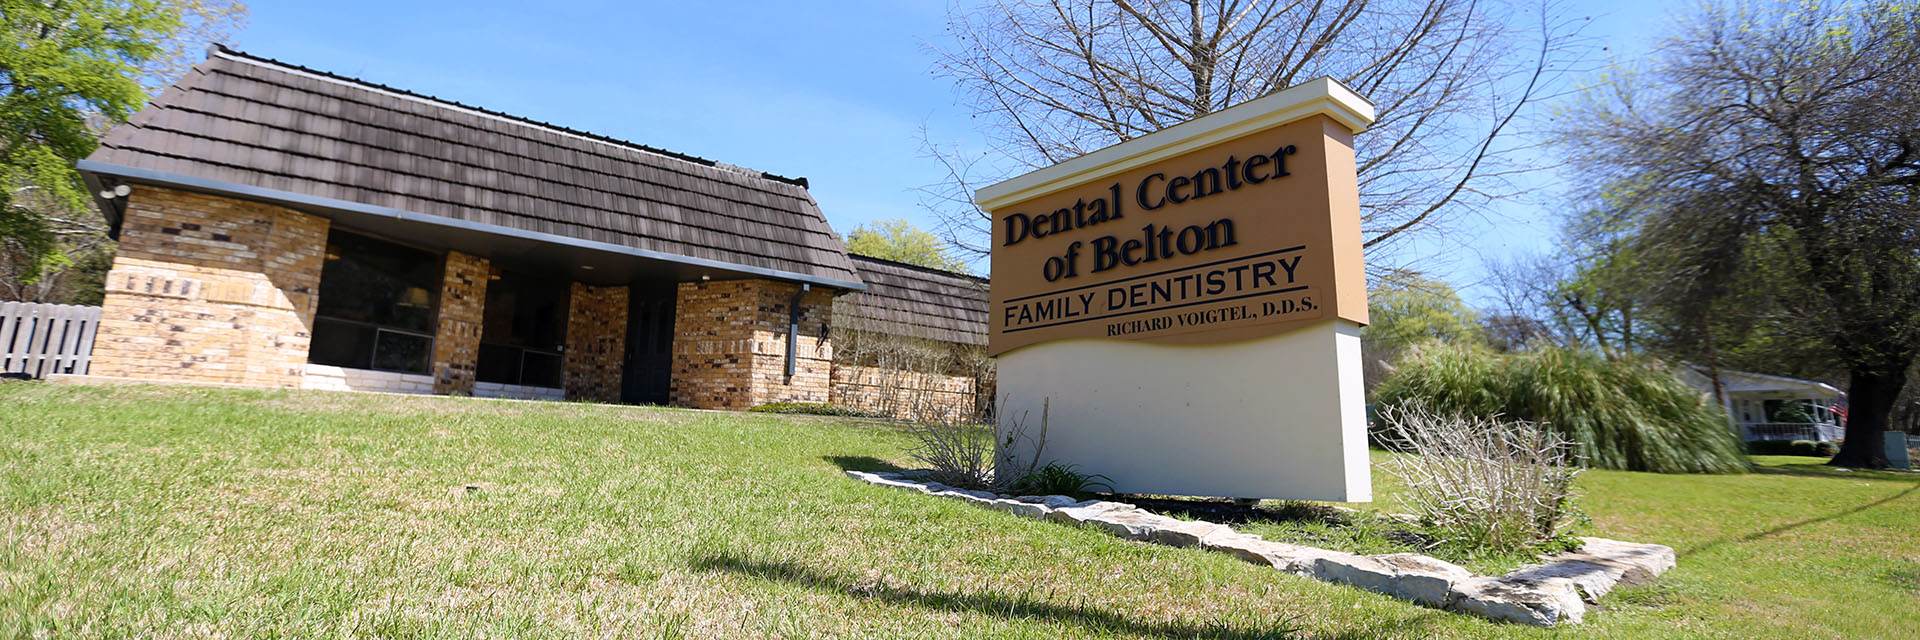 Dental Center of Belton office building